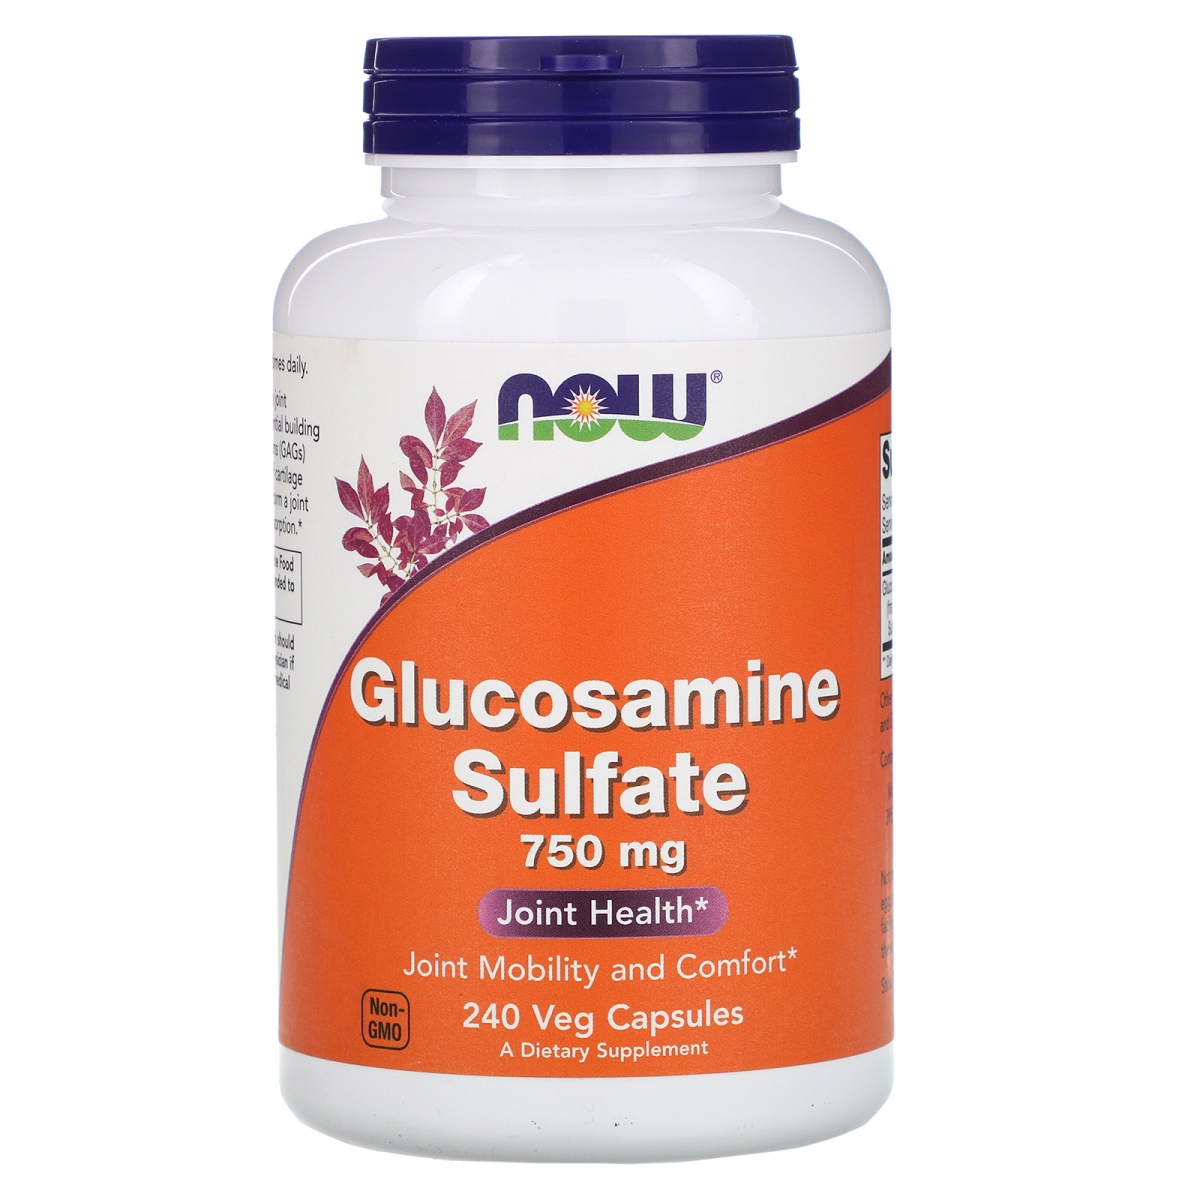 NOW Glucosamine Sulfate 750mg 240caps